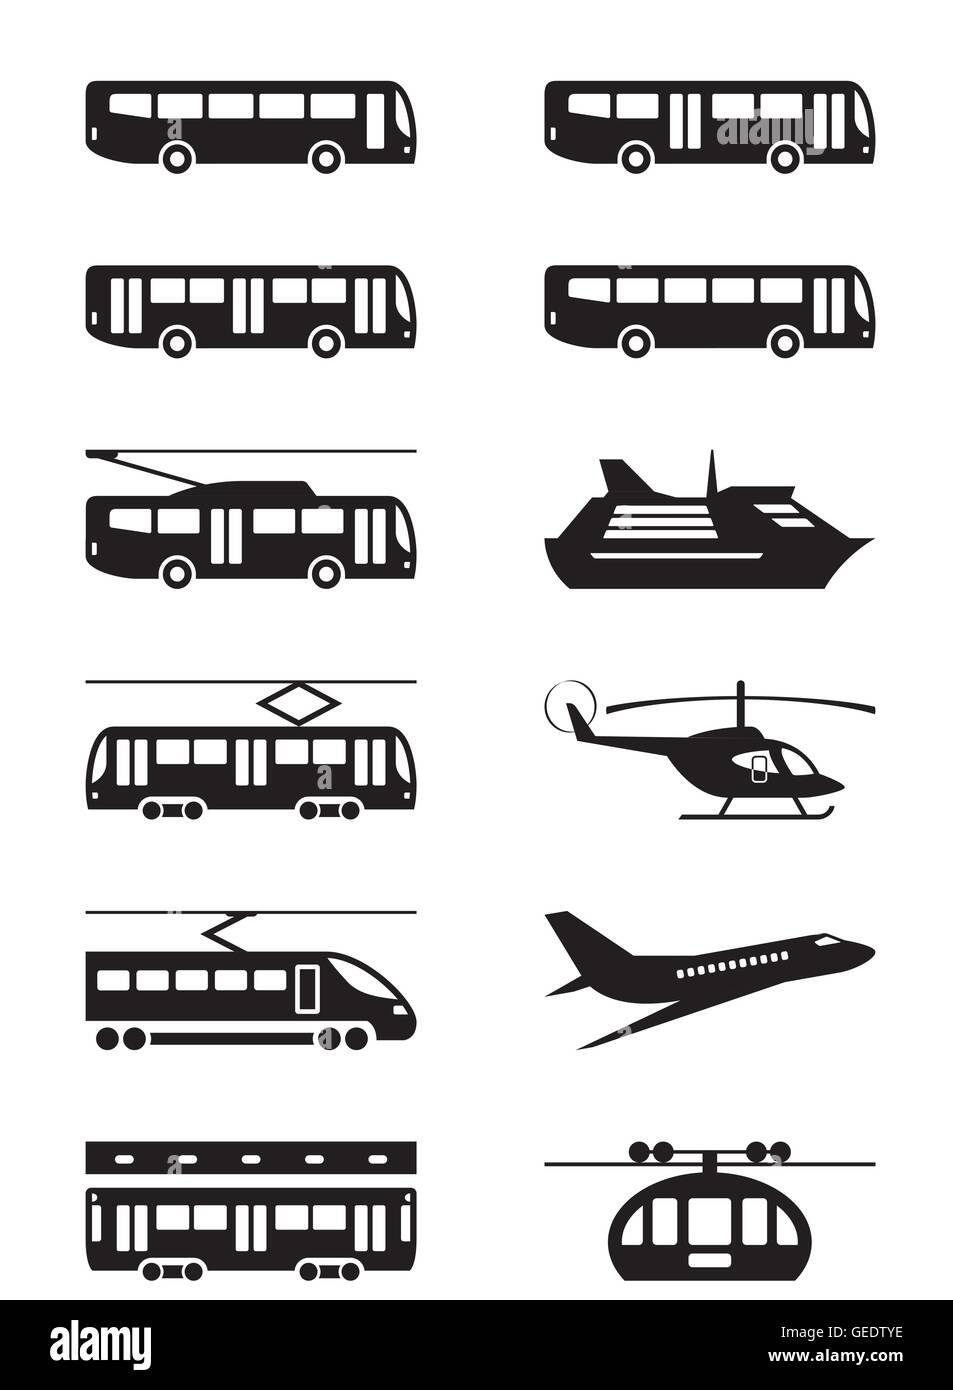 Les véhicules de transport de passagers - vector illustration Photo Stock